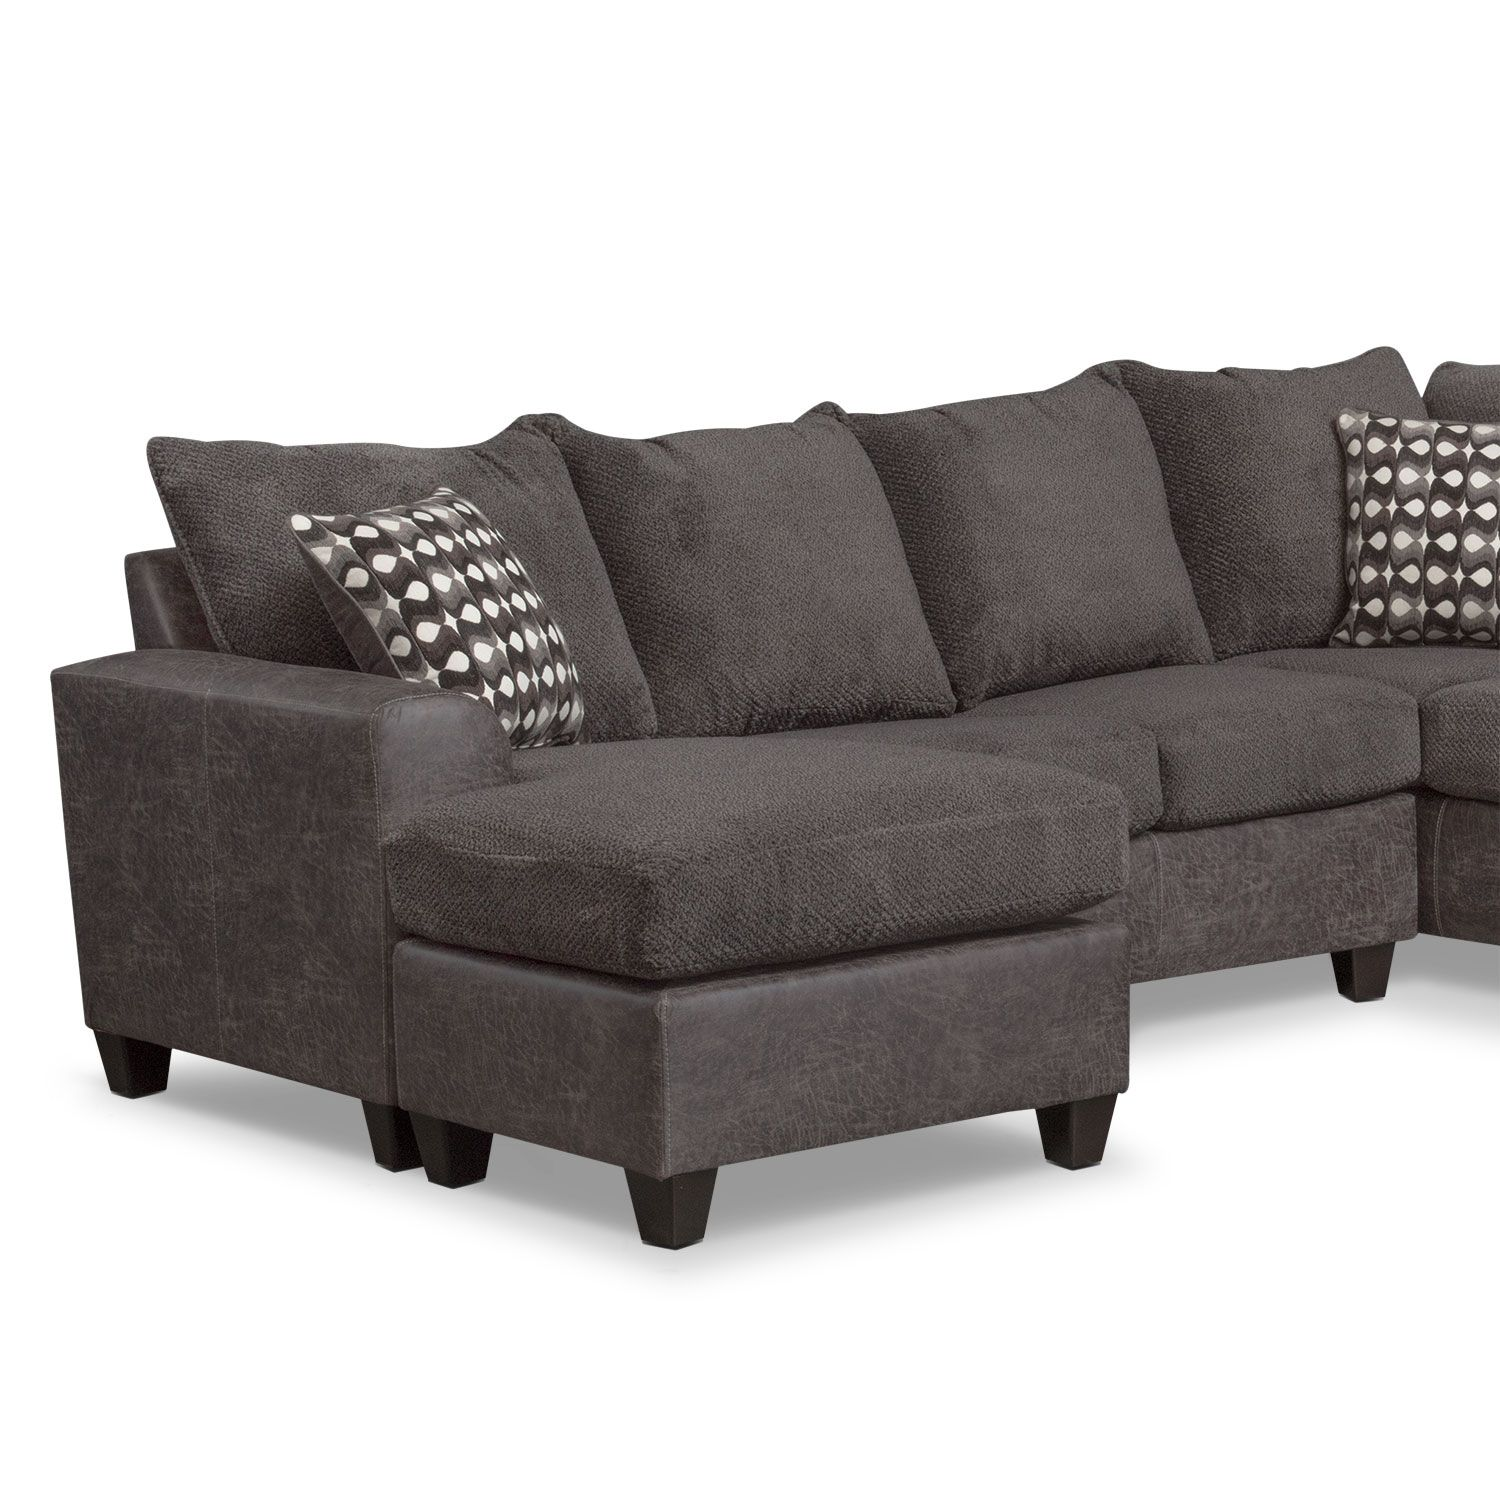 Living Room Furniture Brando 3 Piece Sectional with Modular